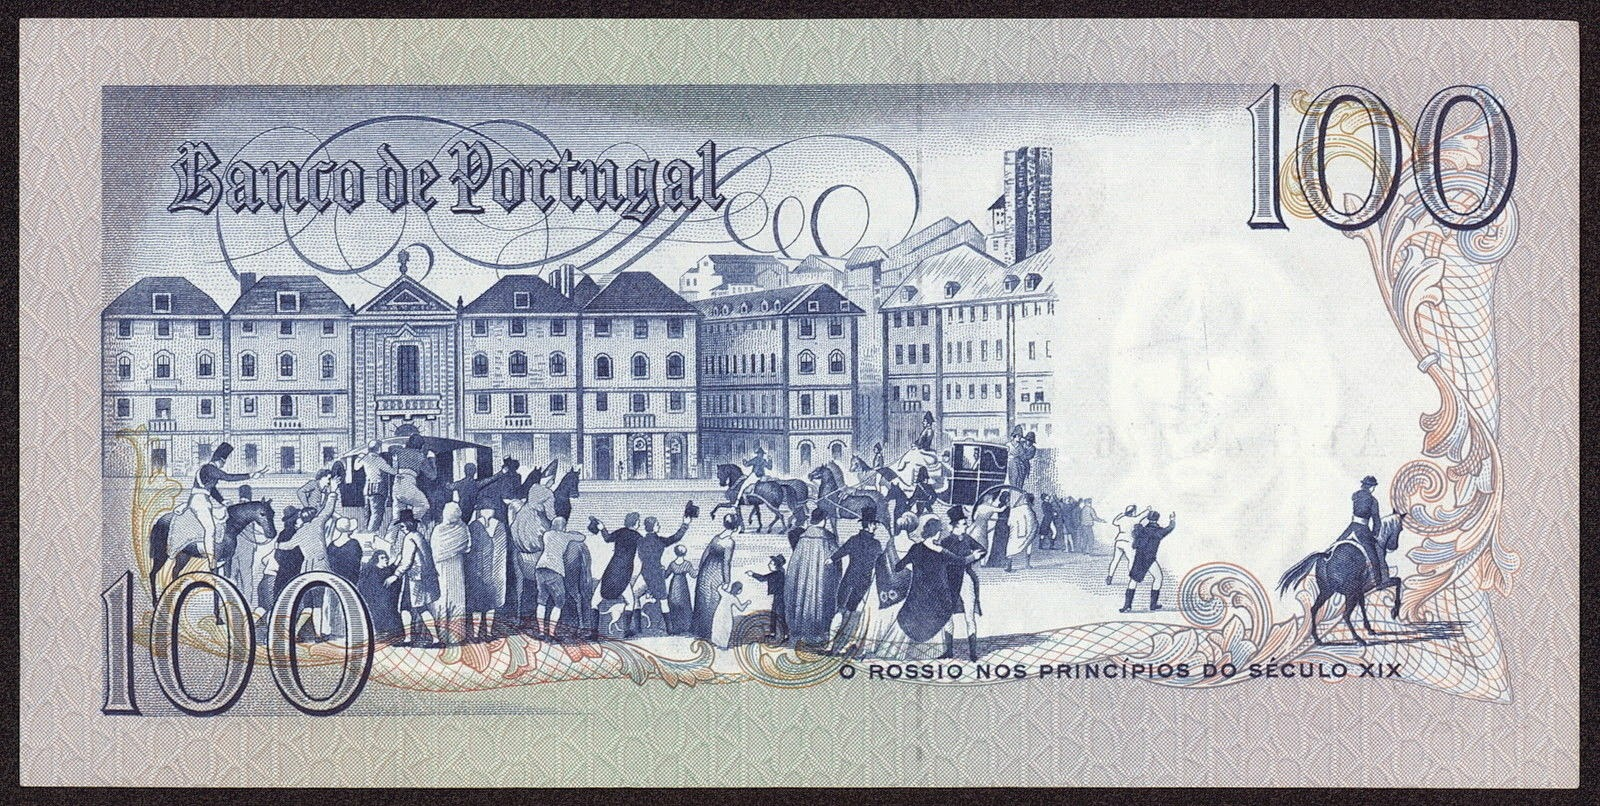 Portugal money currency 100 Escudos banknote 1981 Rossio Square in Lisbon